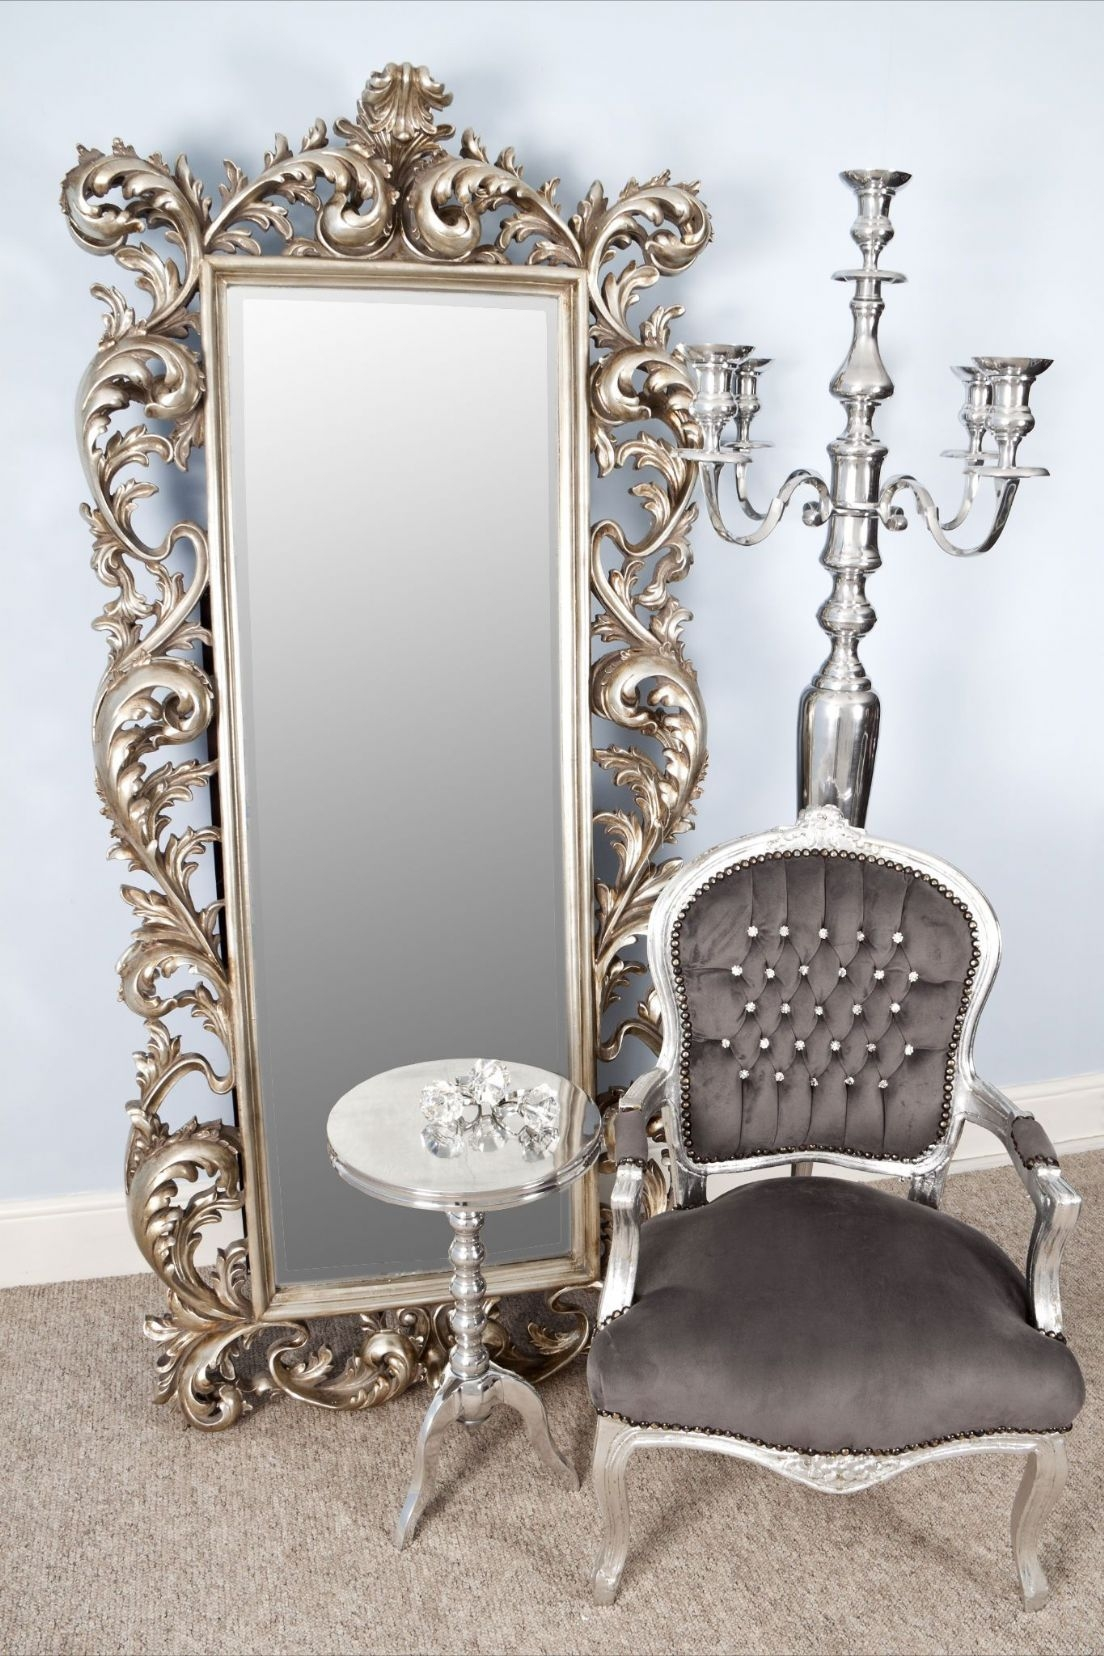 Antique Looking Mirror Best Antique 2017 Throughout Large Ornate Silver Mirror (View 12 of 15)